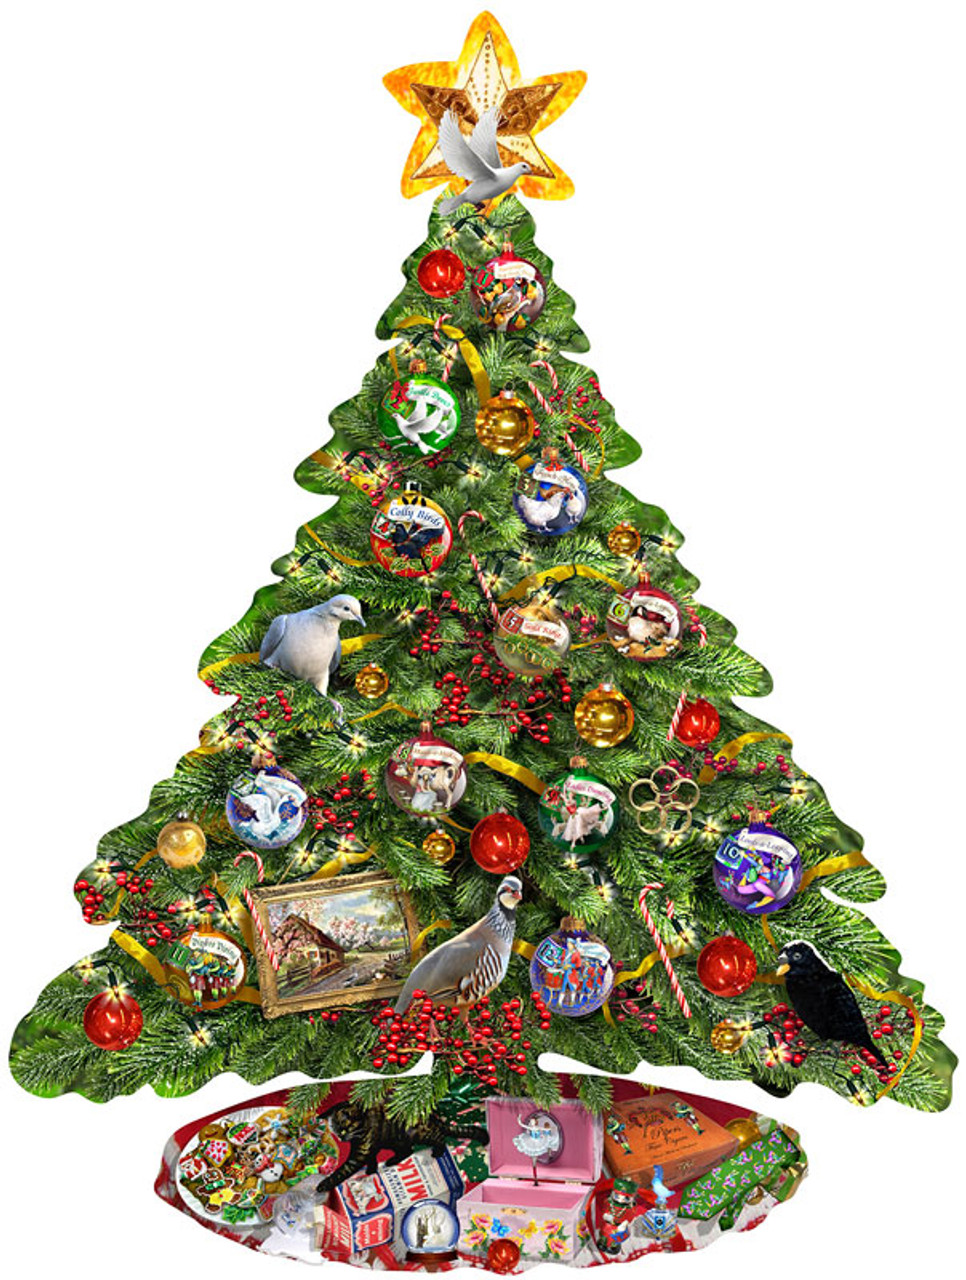 The 12 Days Of Christmas.The Twelve Days Of Christmas X Two 1000pc Shaped Jigsaw Puzzle By Sunsout